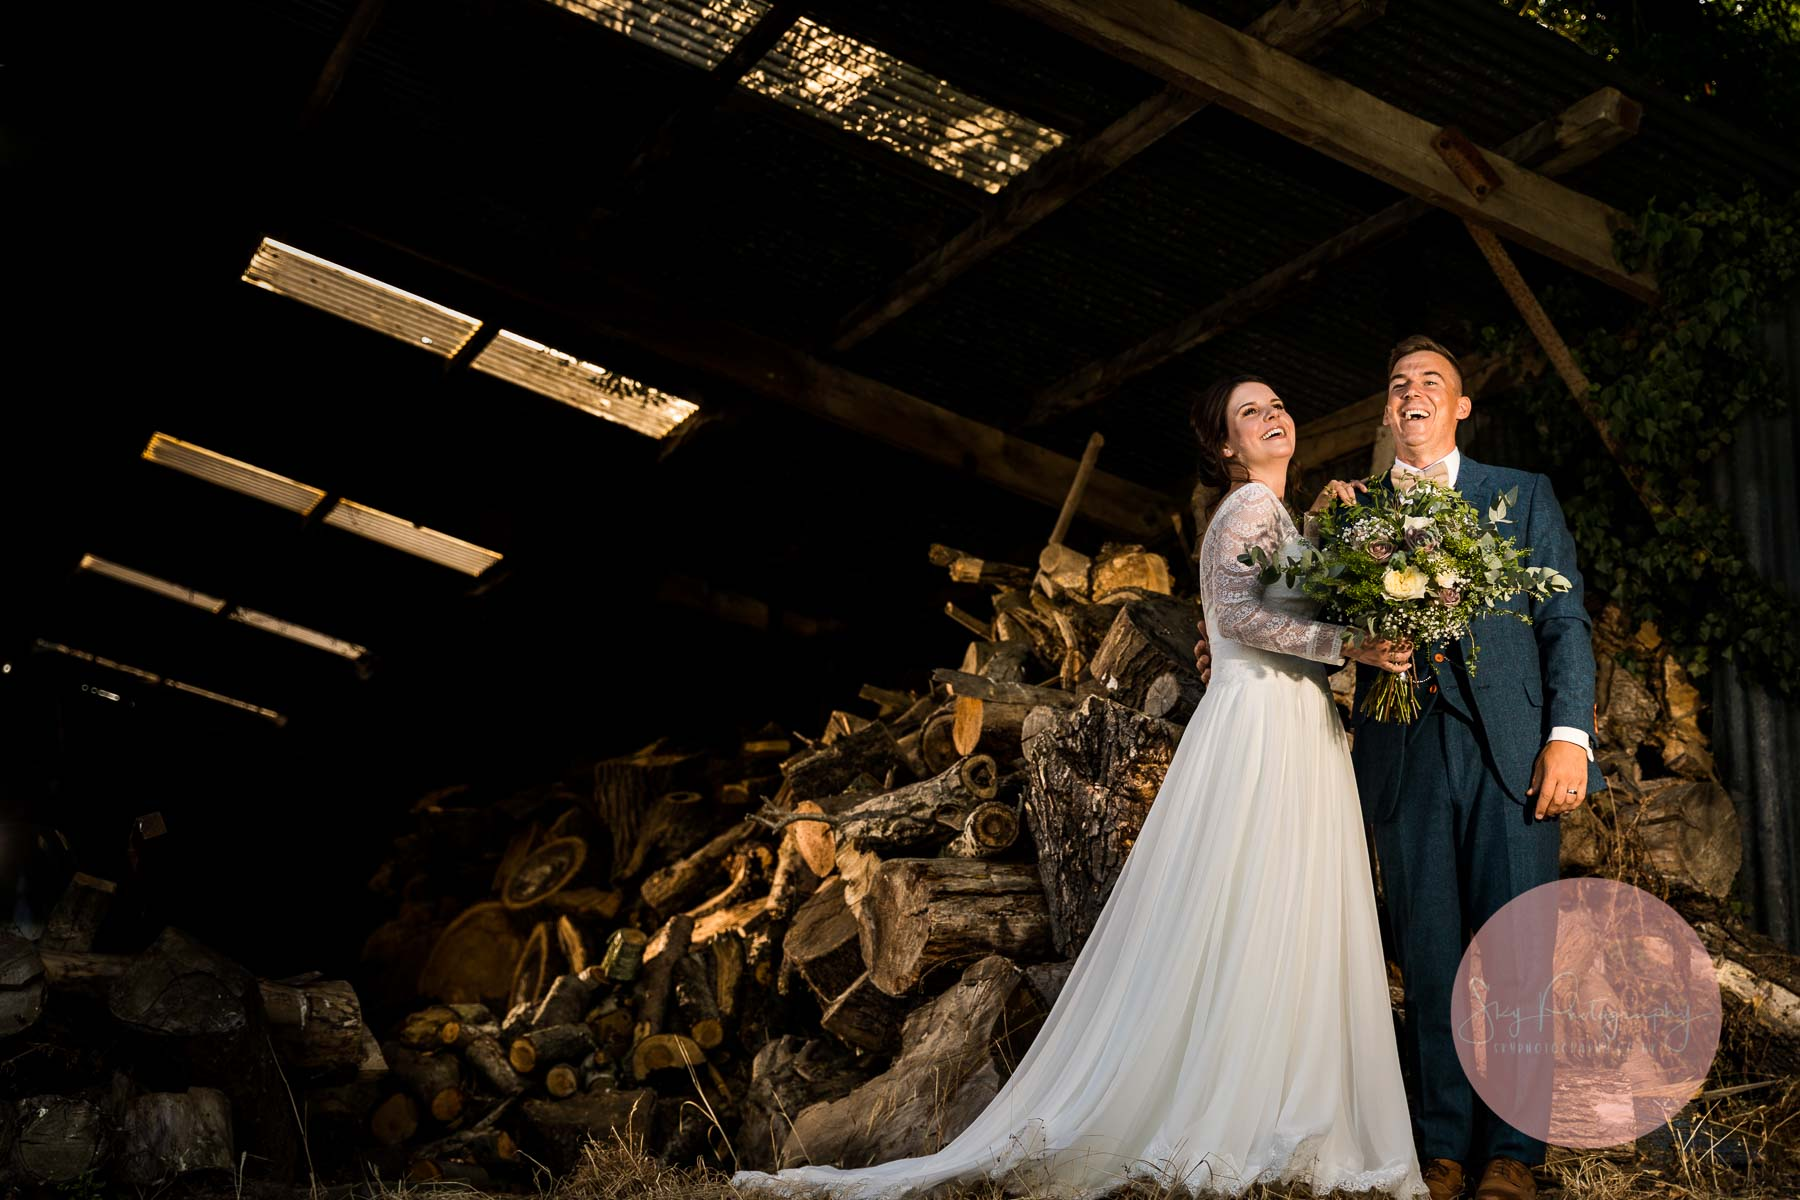 Wood store at bassmead barns wedding photography